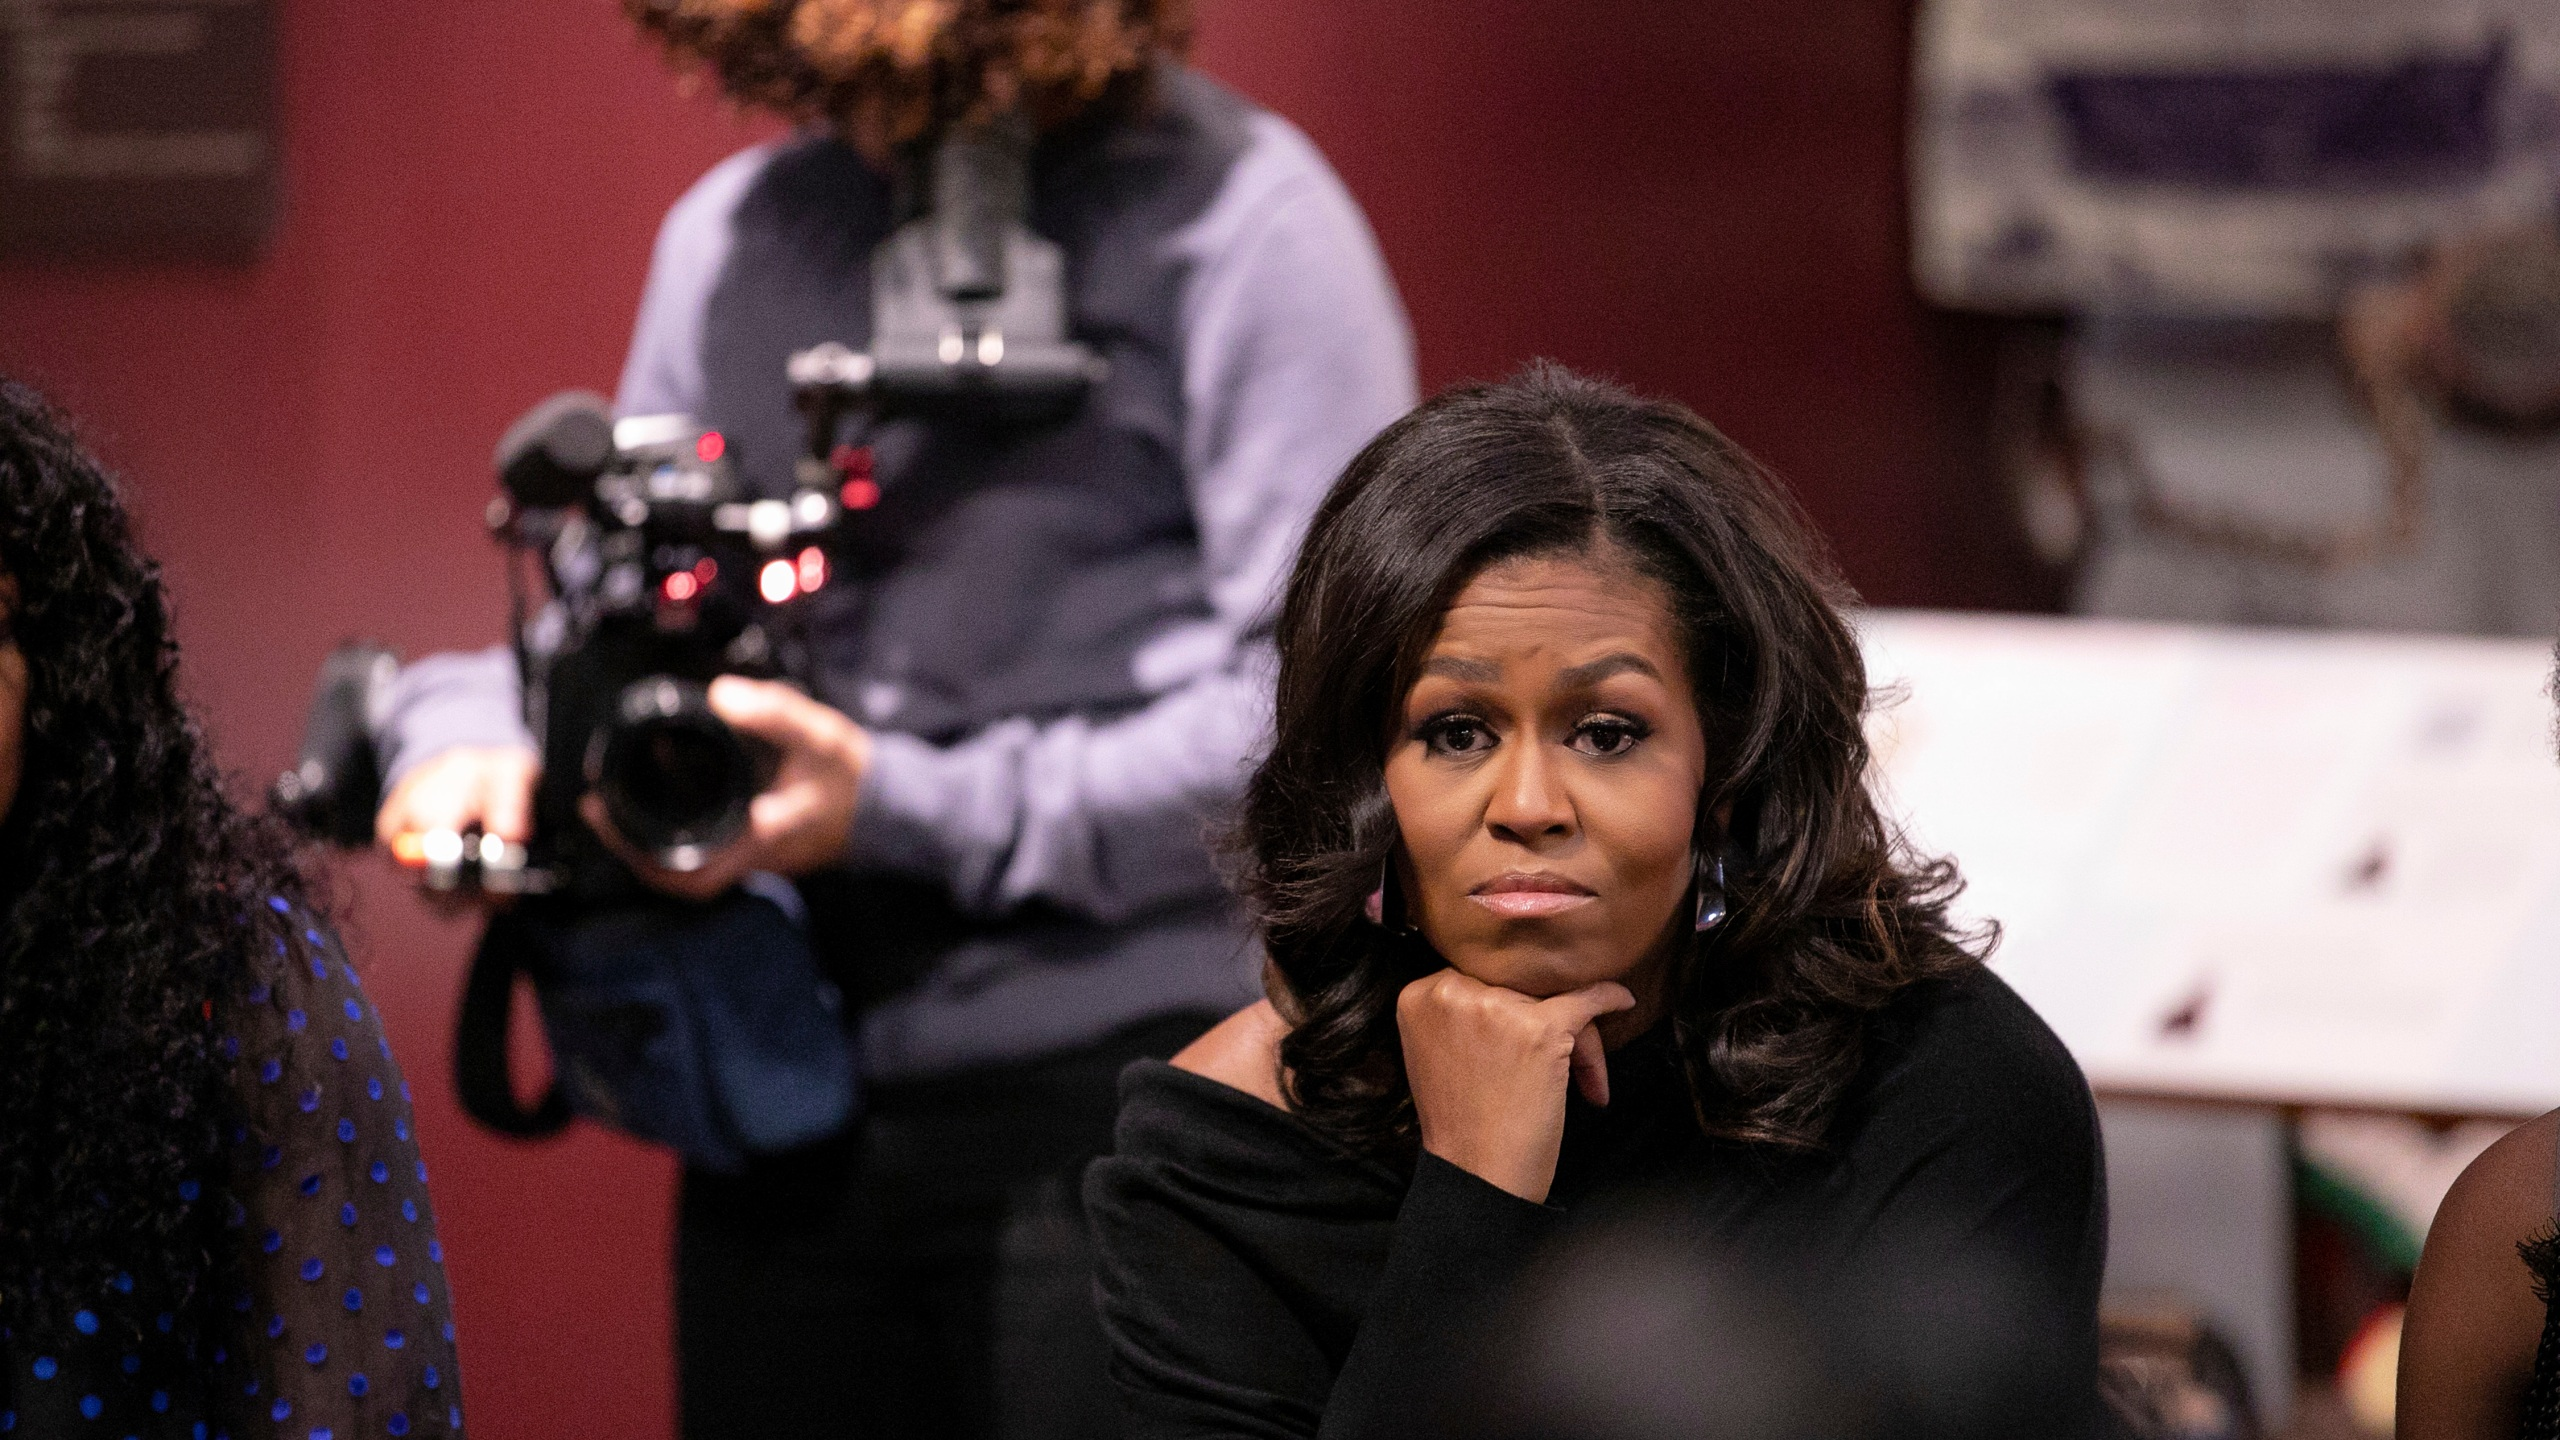 BECOMING (L to R) Director Nadia Hallgren and Michelle Obama in BECOMING. Cr. NETFLIX © 2020, 1